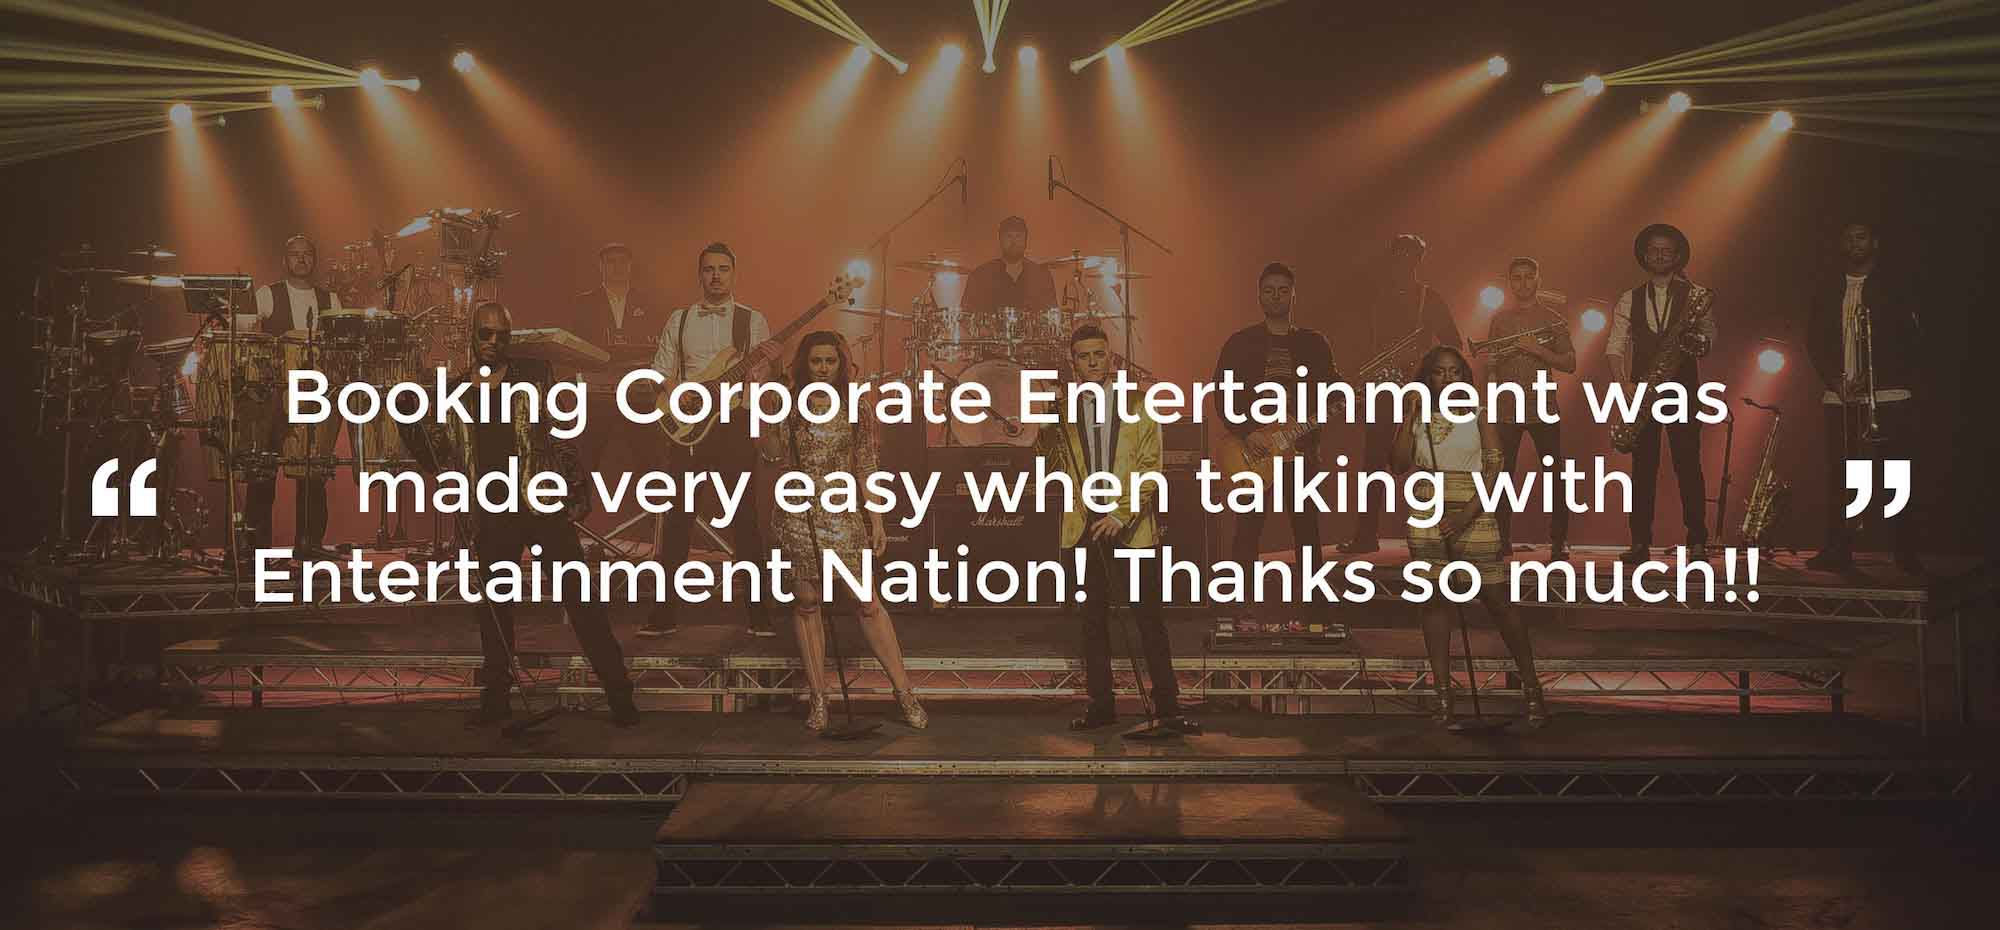 Review of Corporate Entertainment York